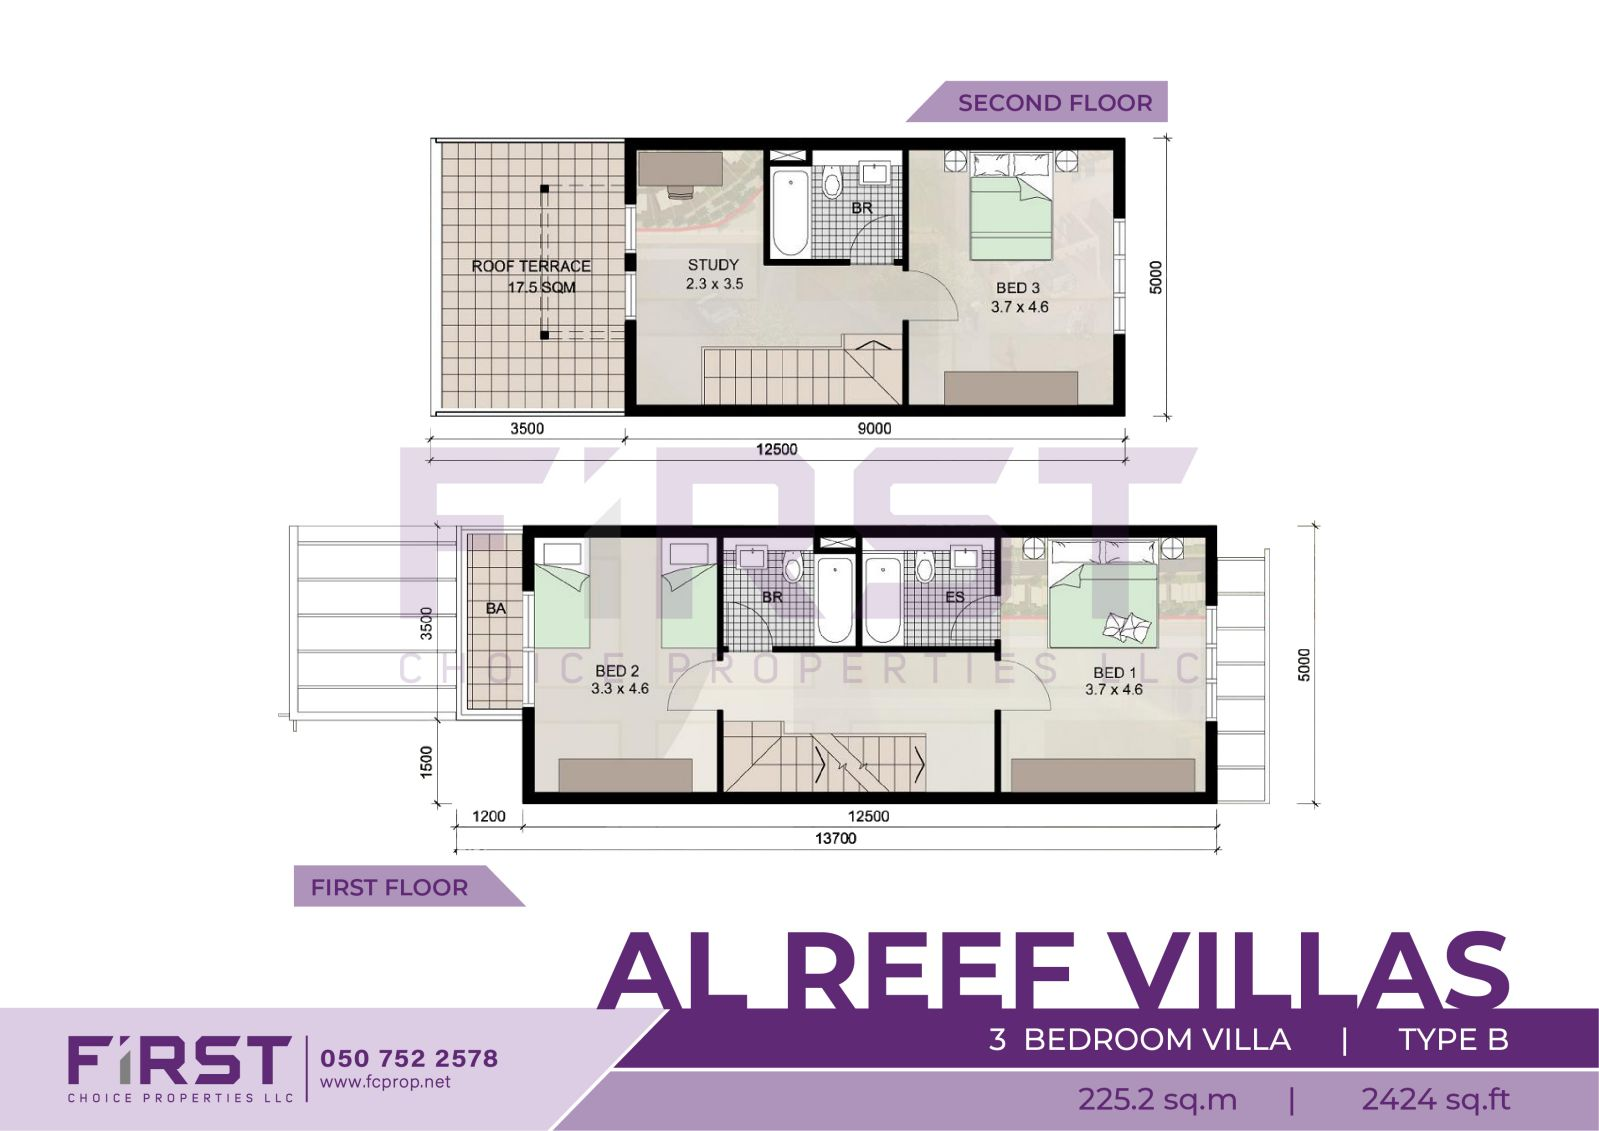 Al Reef Abu Dhabi Al Reef Villas 3 Bedroom Villa Type B 225.2 sq.m 2424 sq.ft 1.jpg